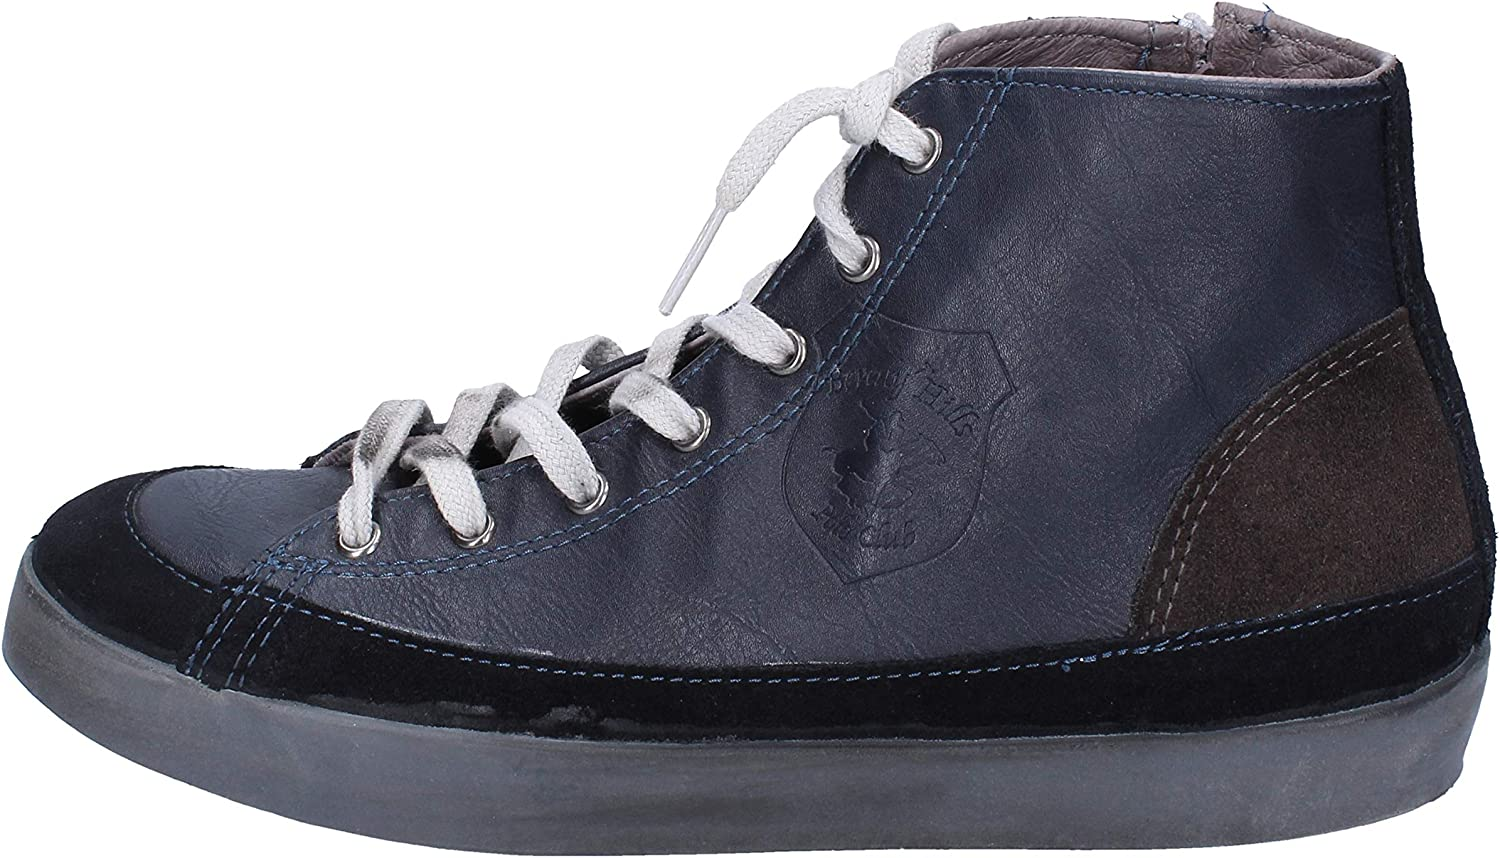 Beverly Hills Polo Club Fashion-Sneakers Mens Leather bluee